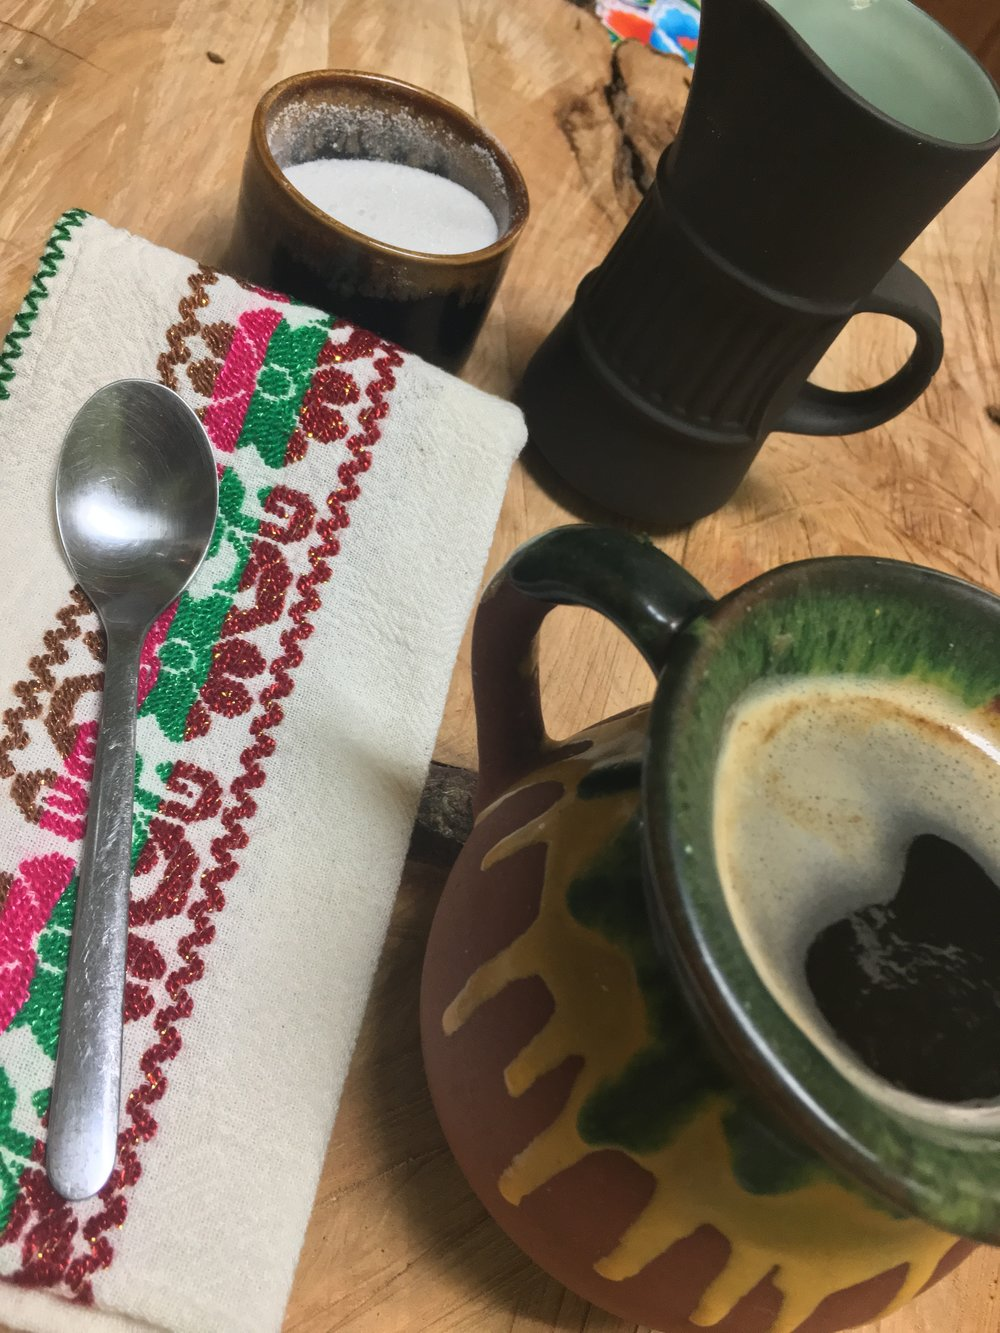 1. Mexican Coffee or Cafe de Olla con Canela